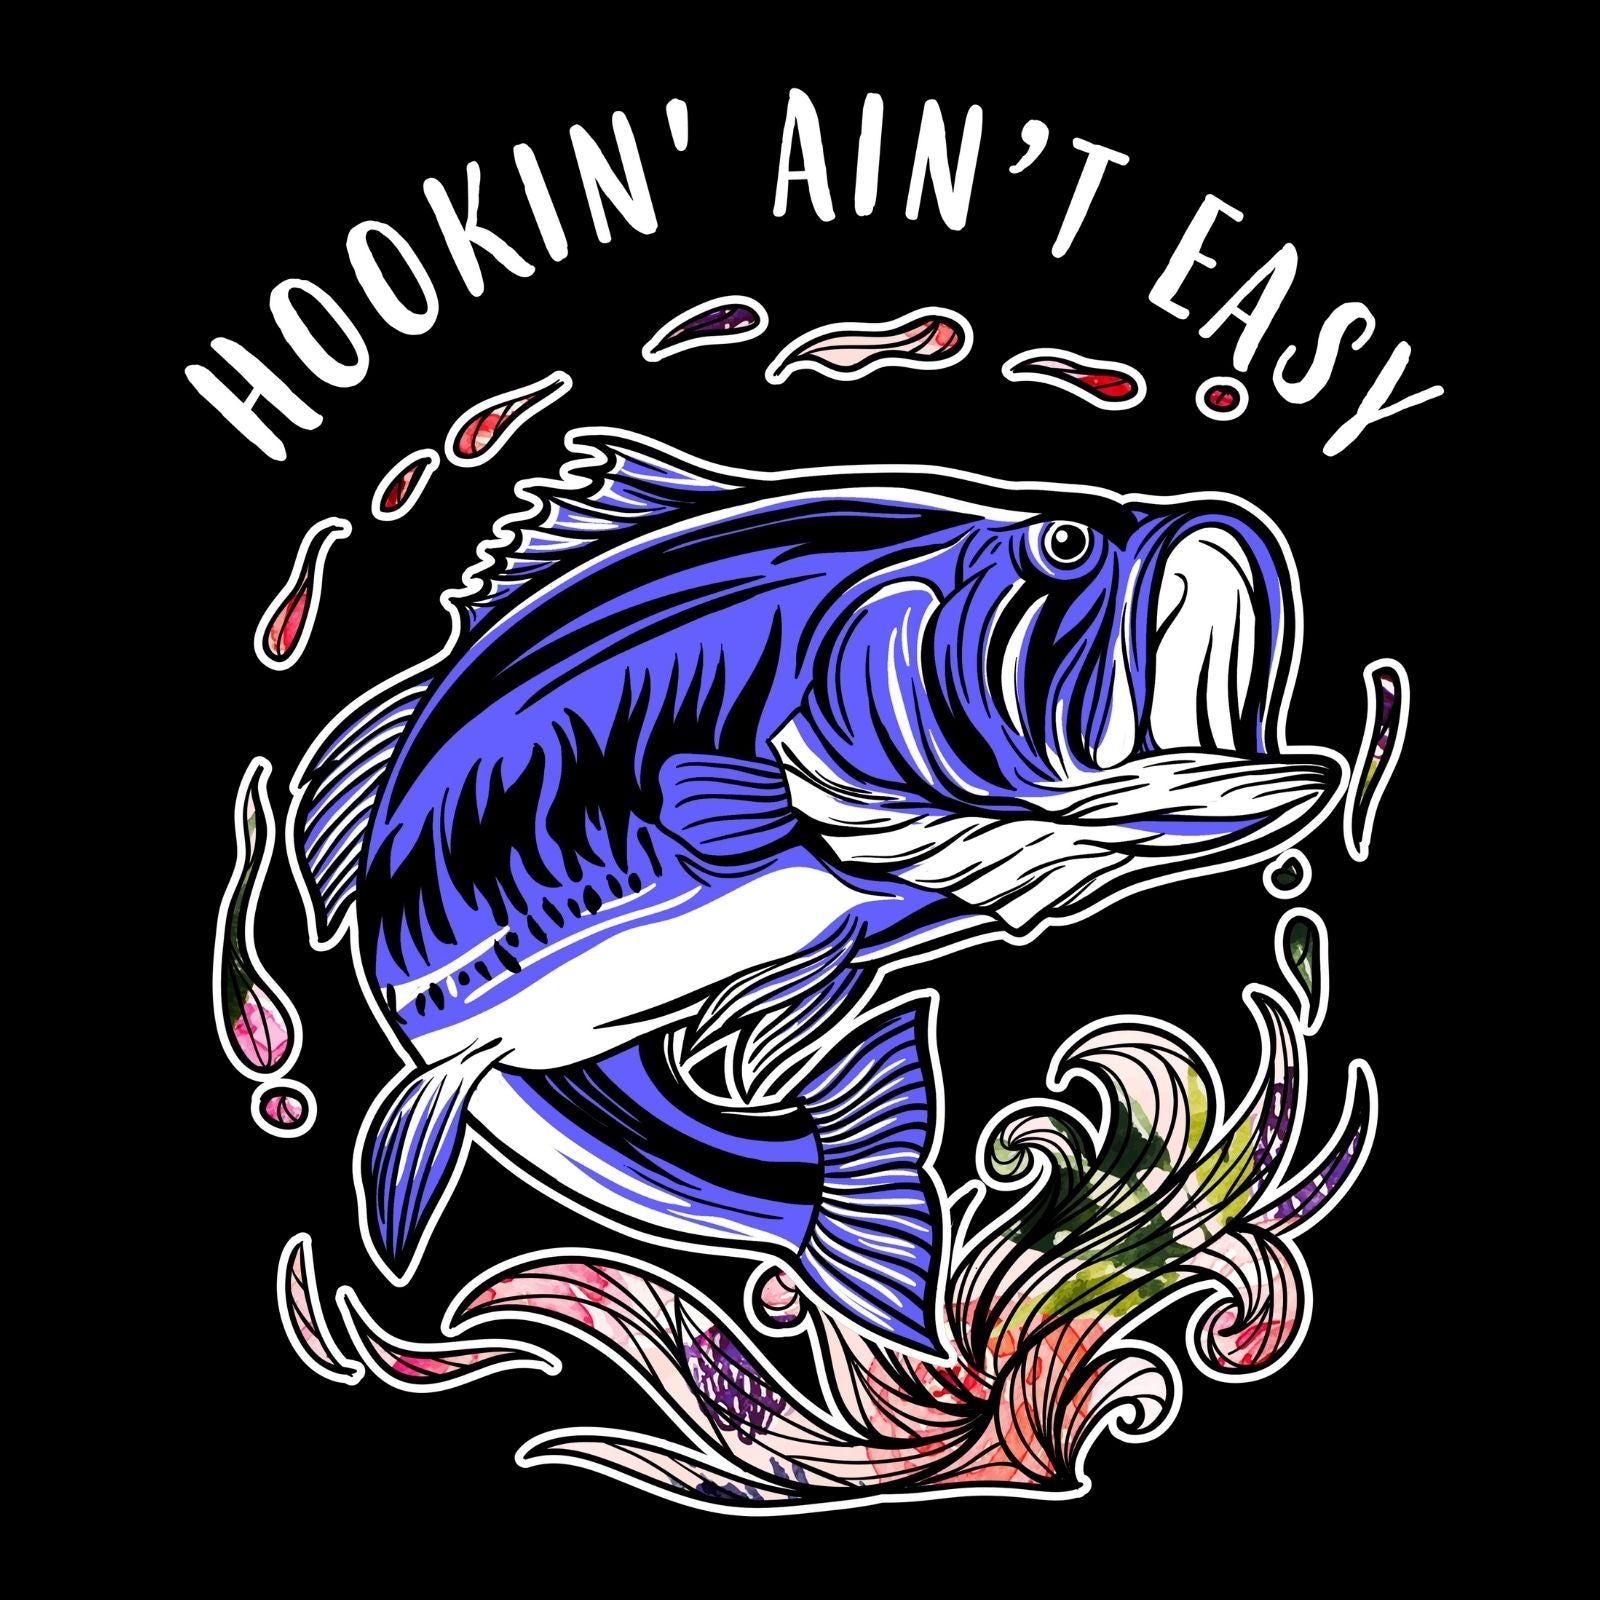 Hookin Aint Easy - Bastard Graphics